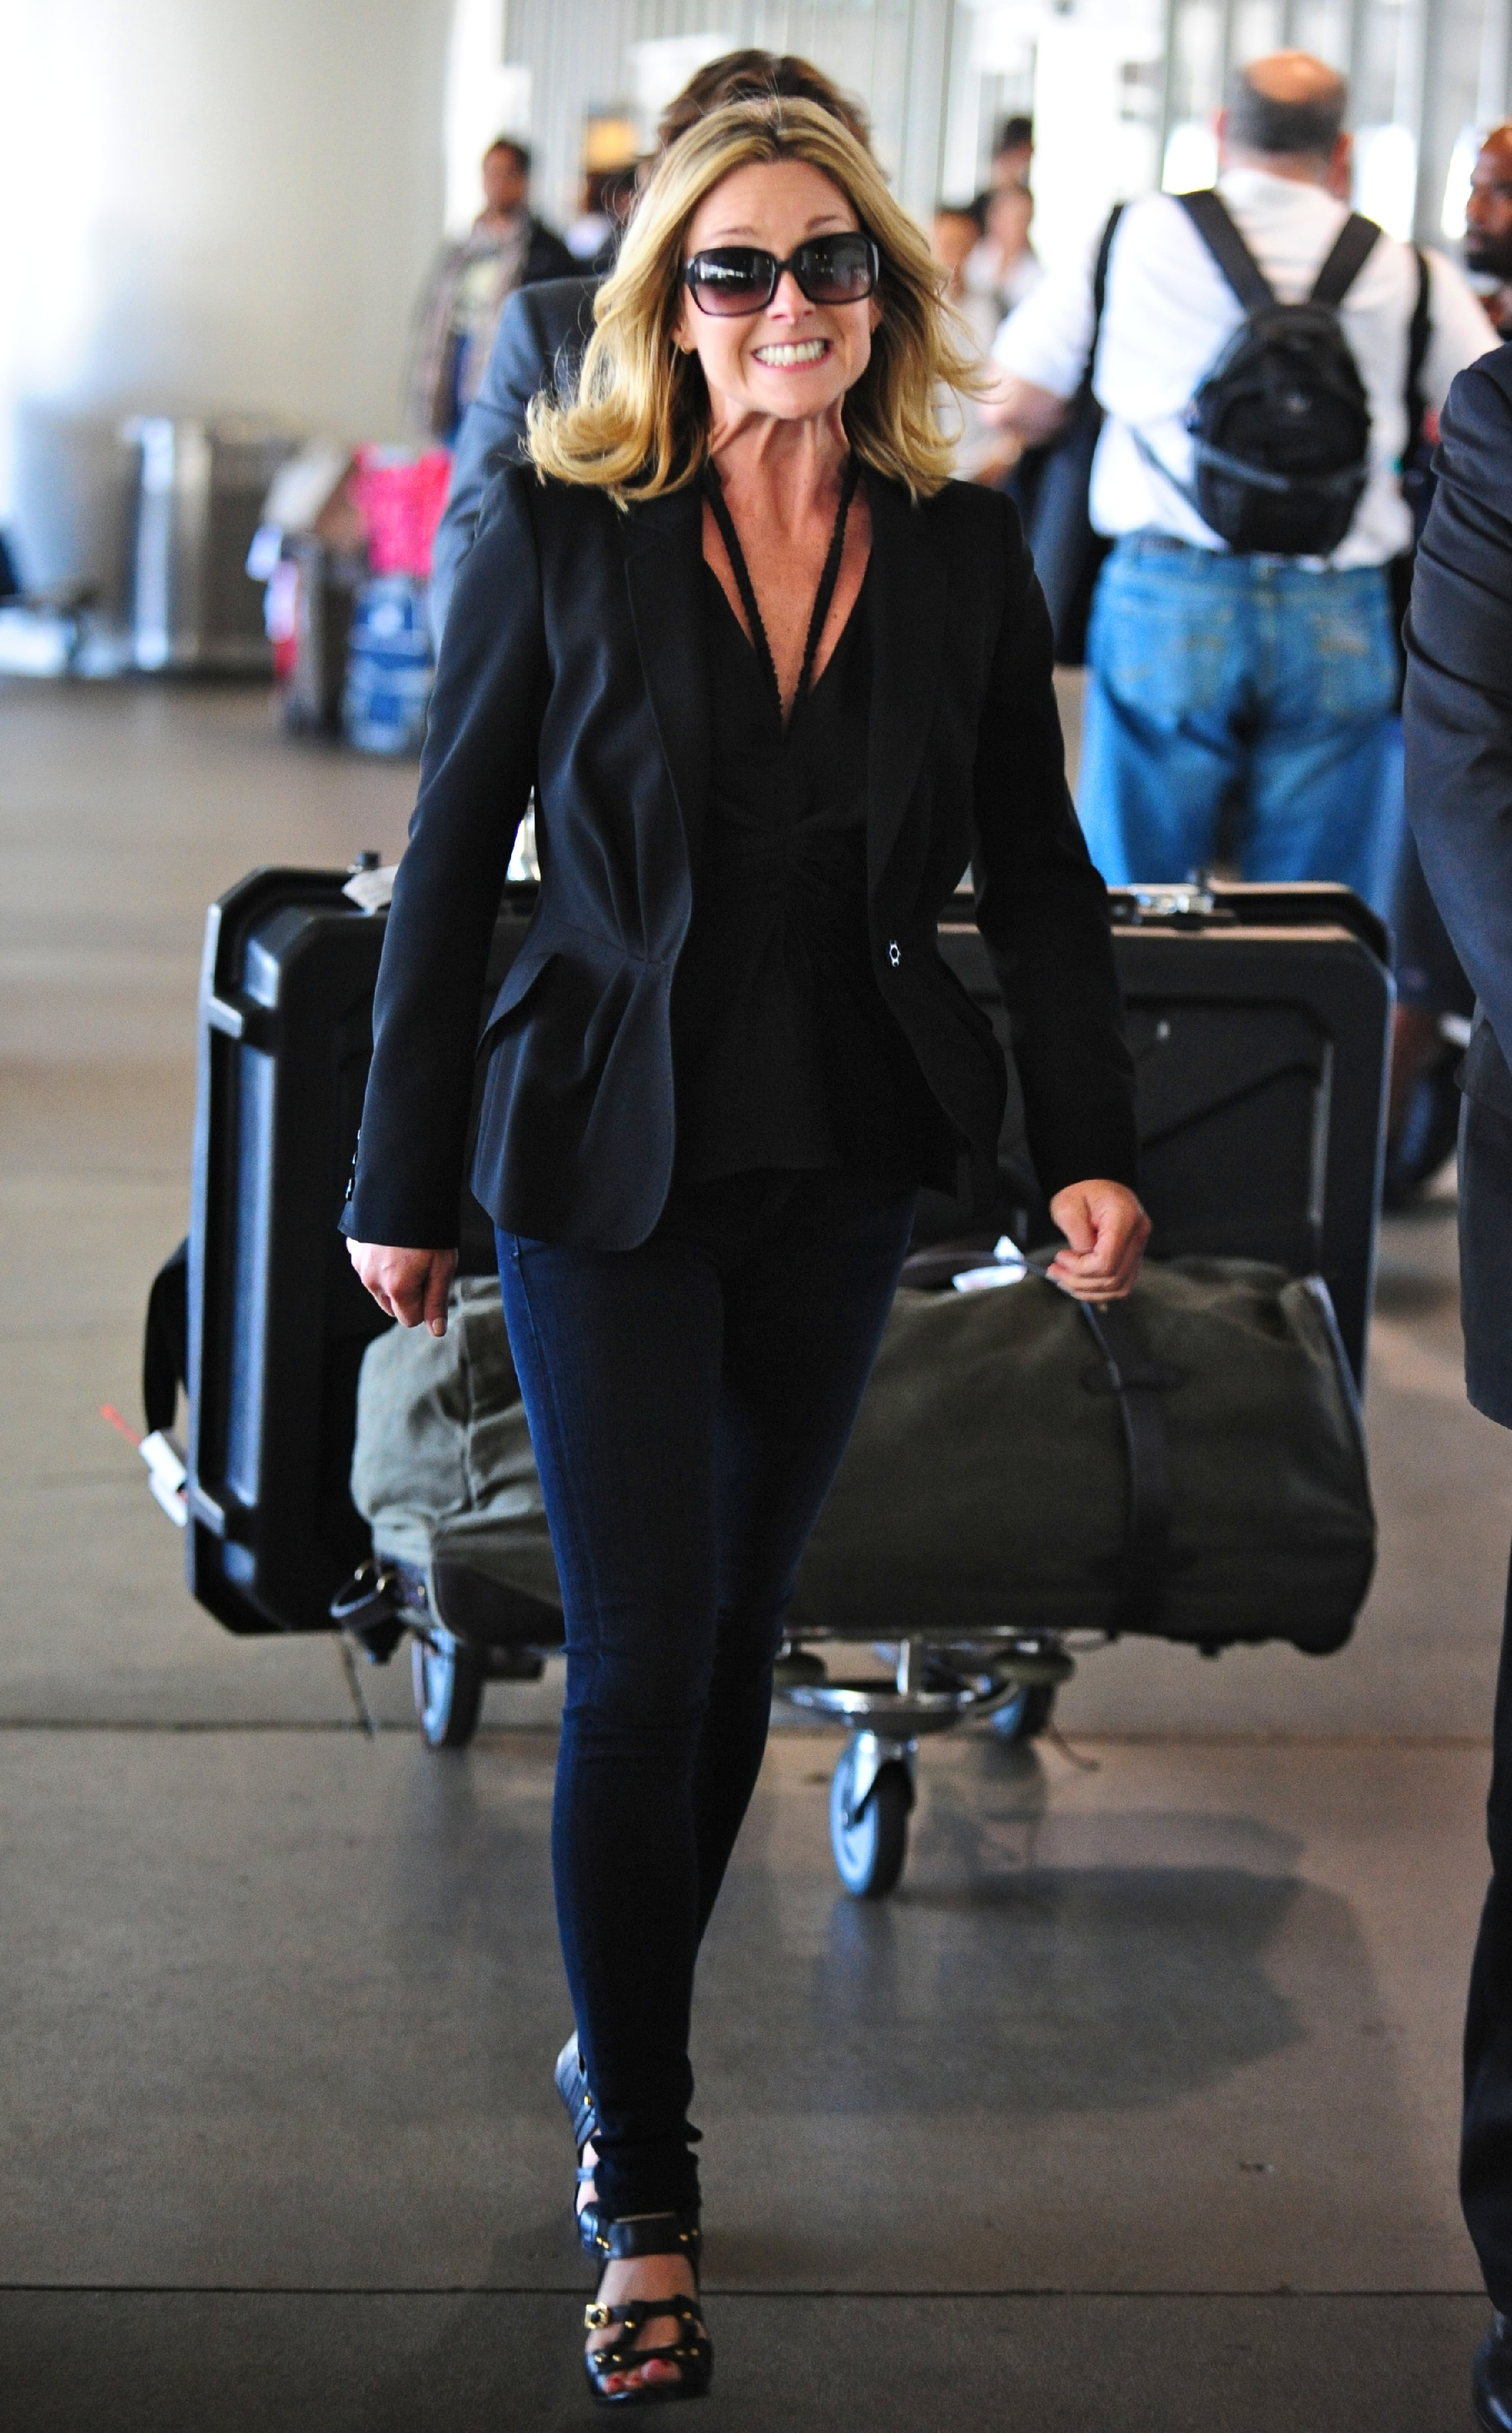 75023_Preppie_-_Jane_Krakowski_arrives_into_LAX_Airport_-_September_19_2009_036_122_171lo.jpg